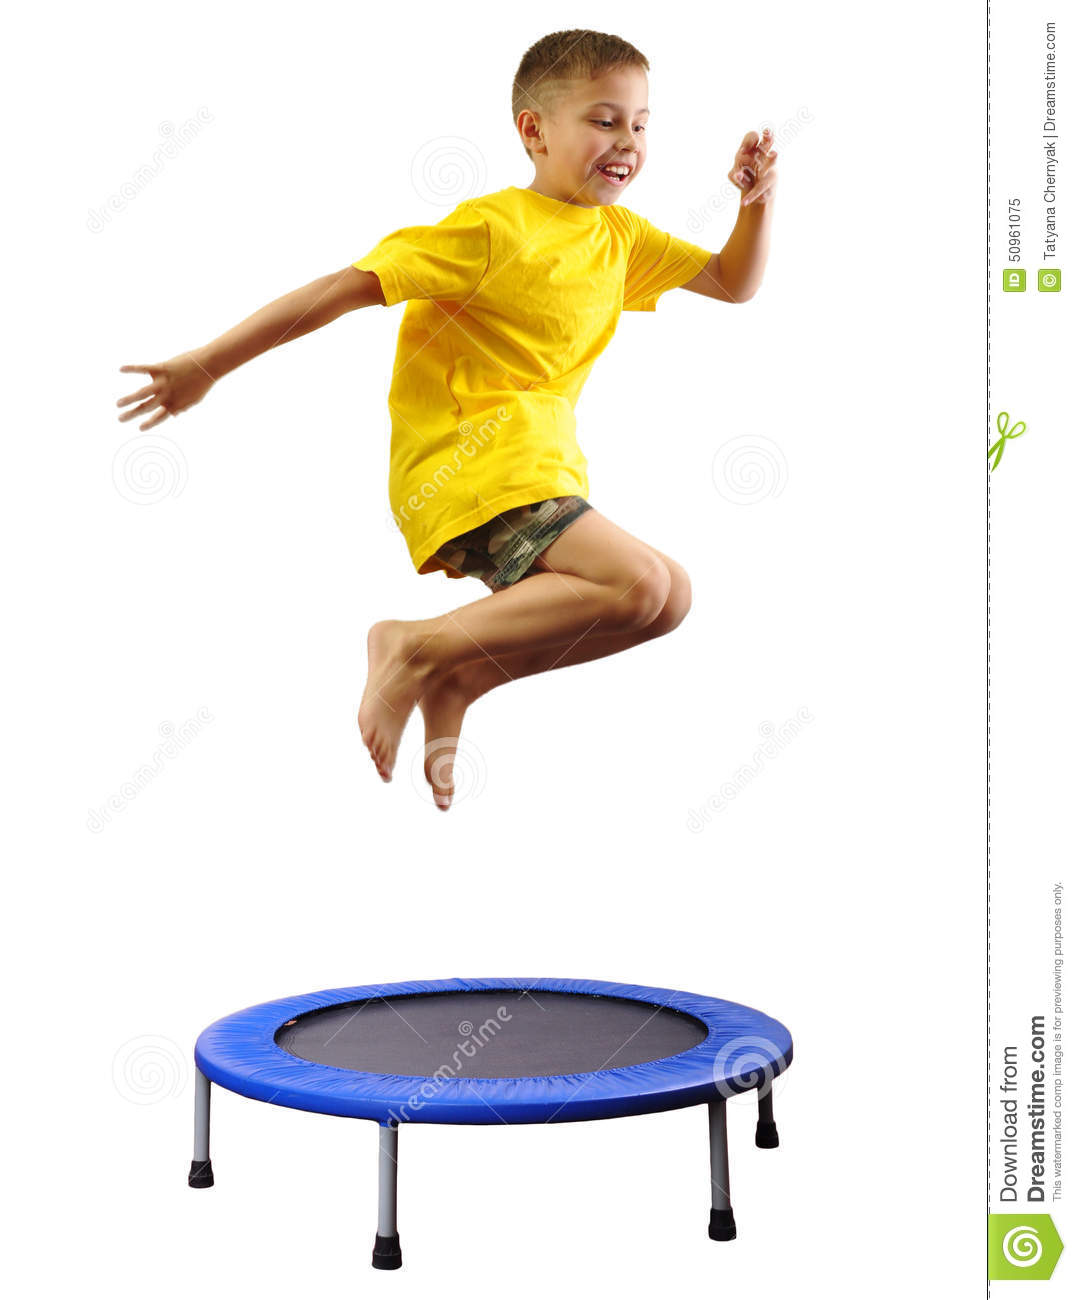 kid exercising and jumping on a trampoline stock image image of